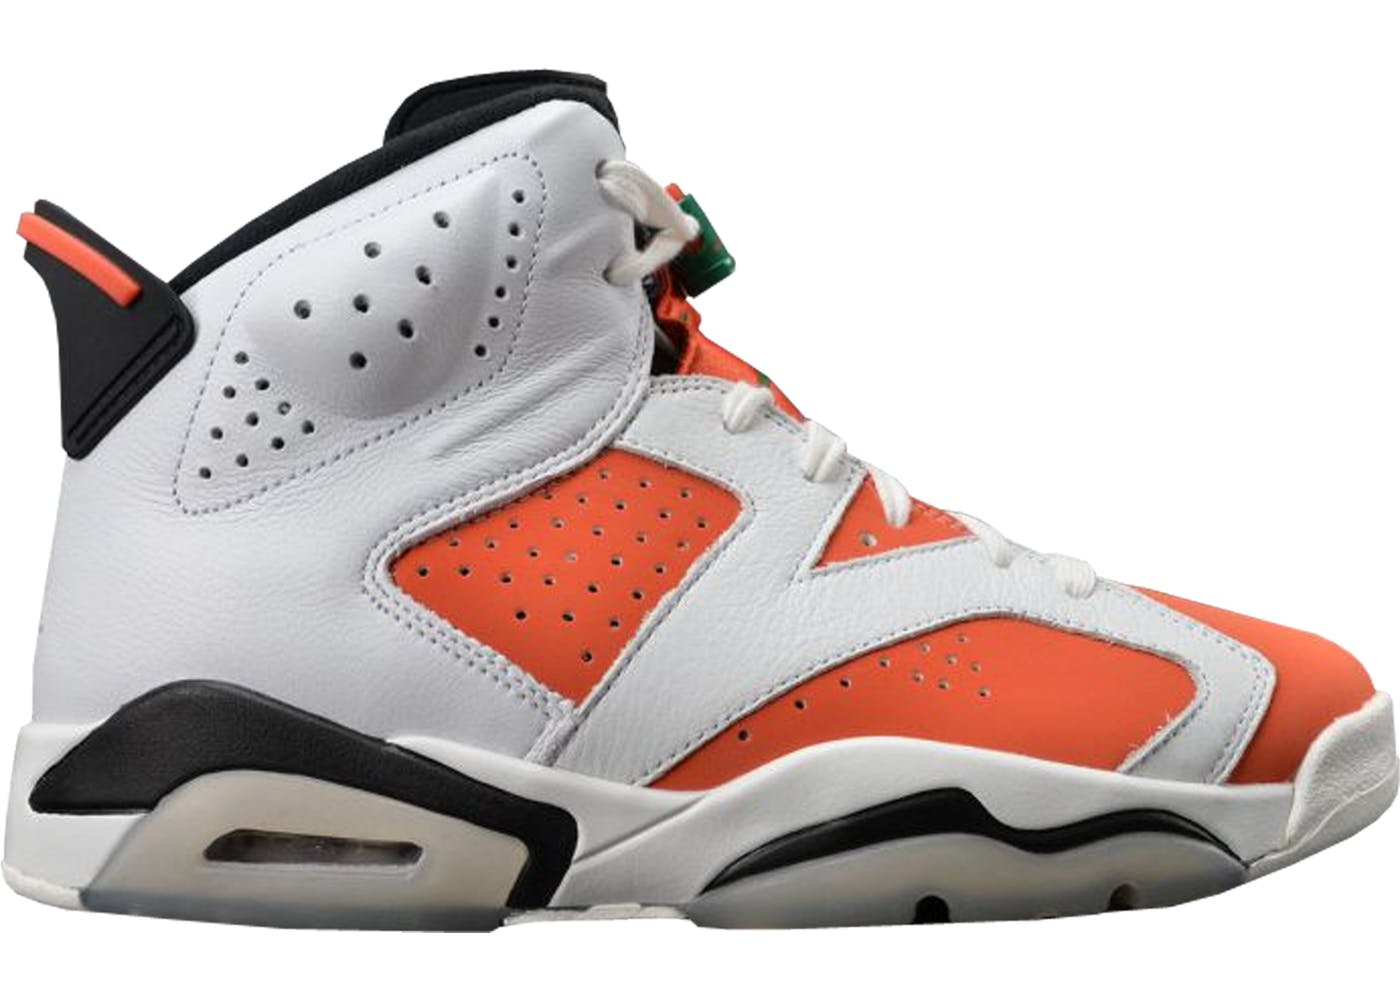 ec215c70822 Gatorade x Air Jordan 6 Retro Like Mike - StockX News